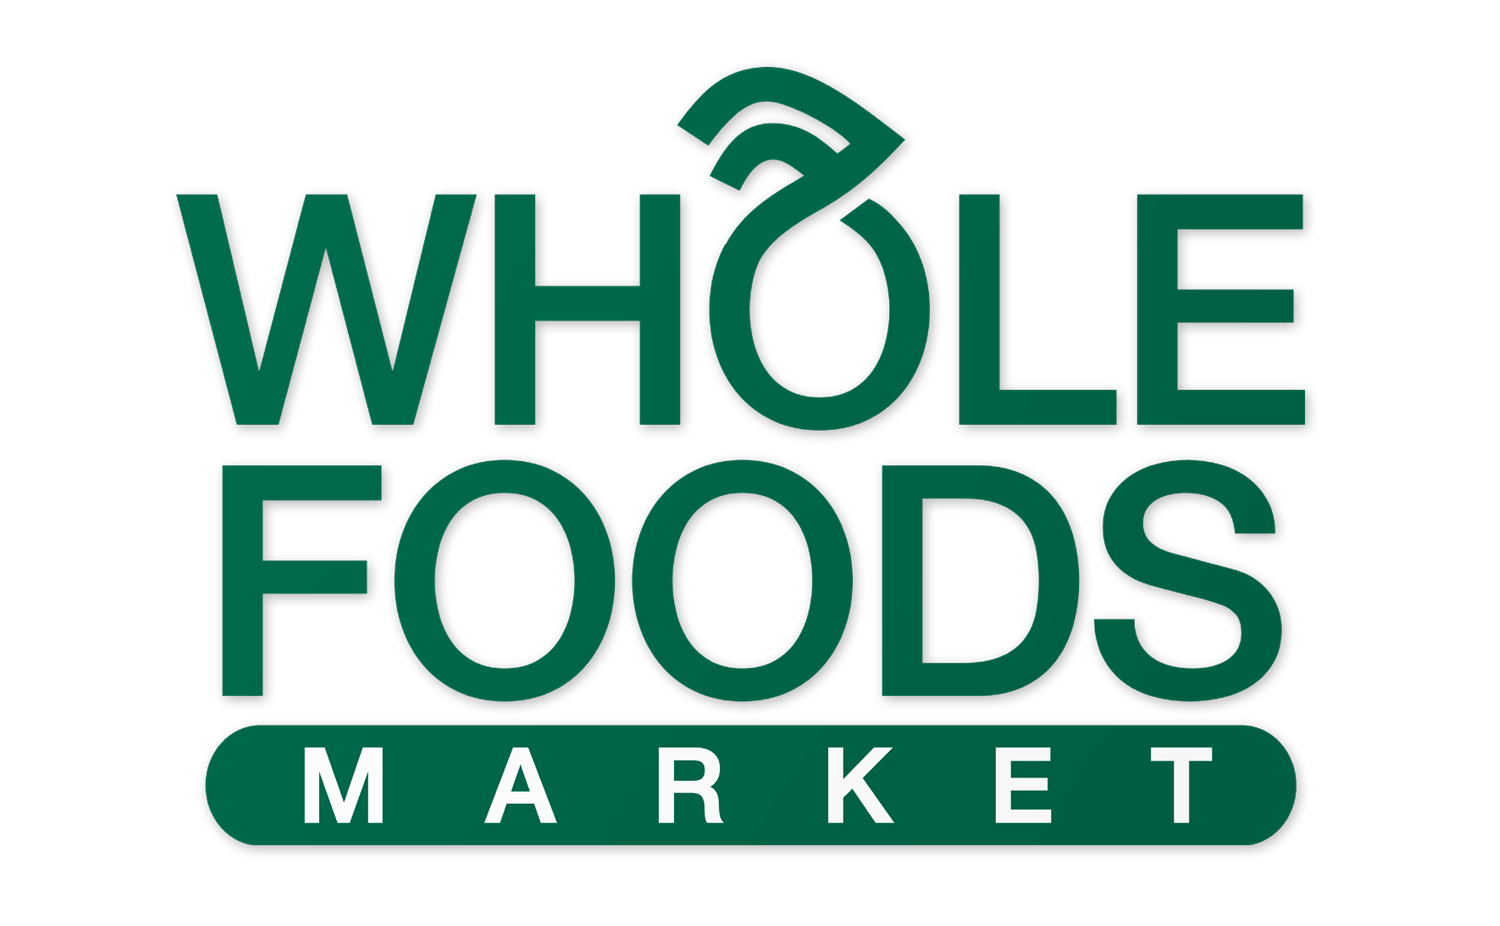 Whole Foods Logo - Whole Foods Market Logo | LOGOSURFER.COM